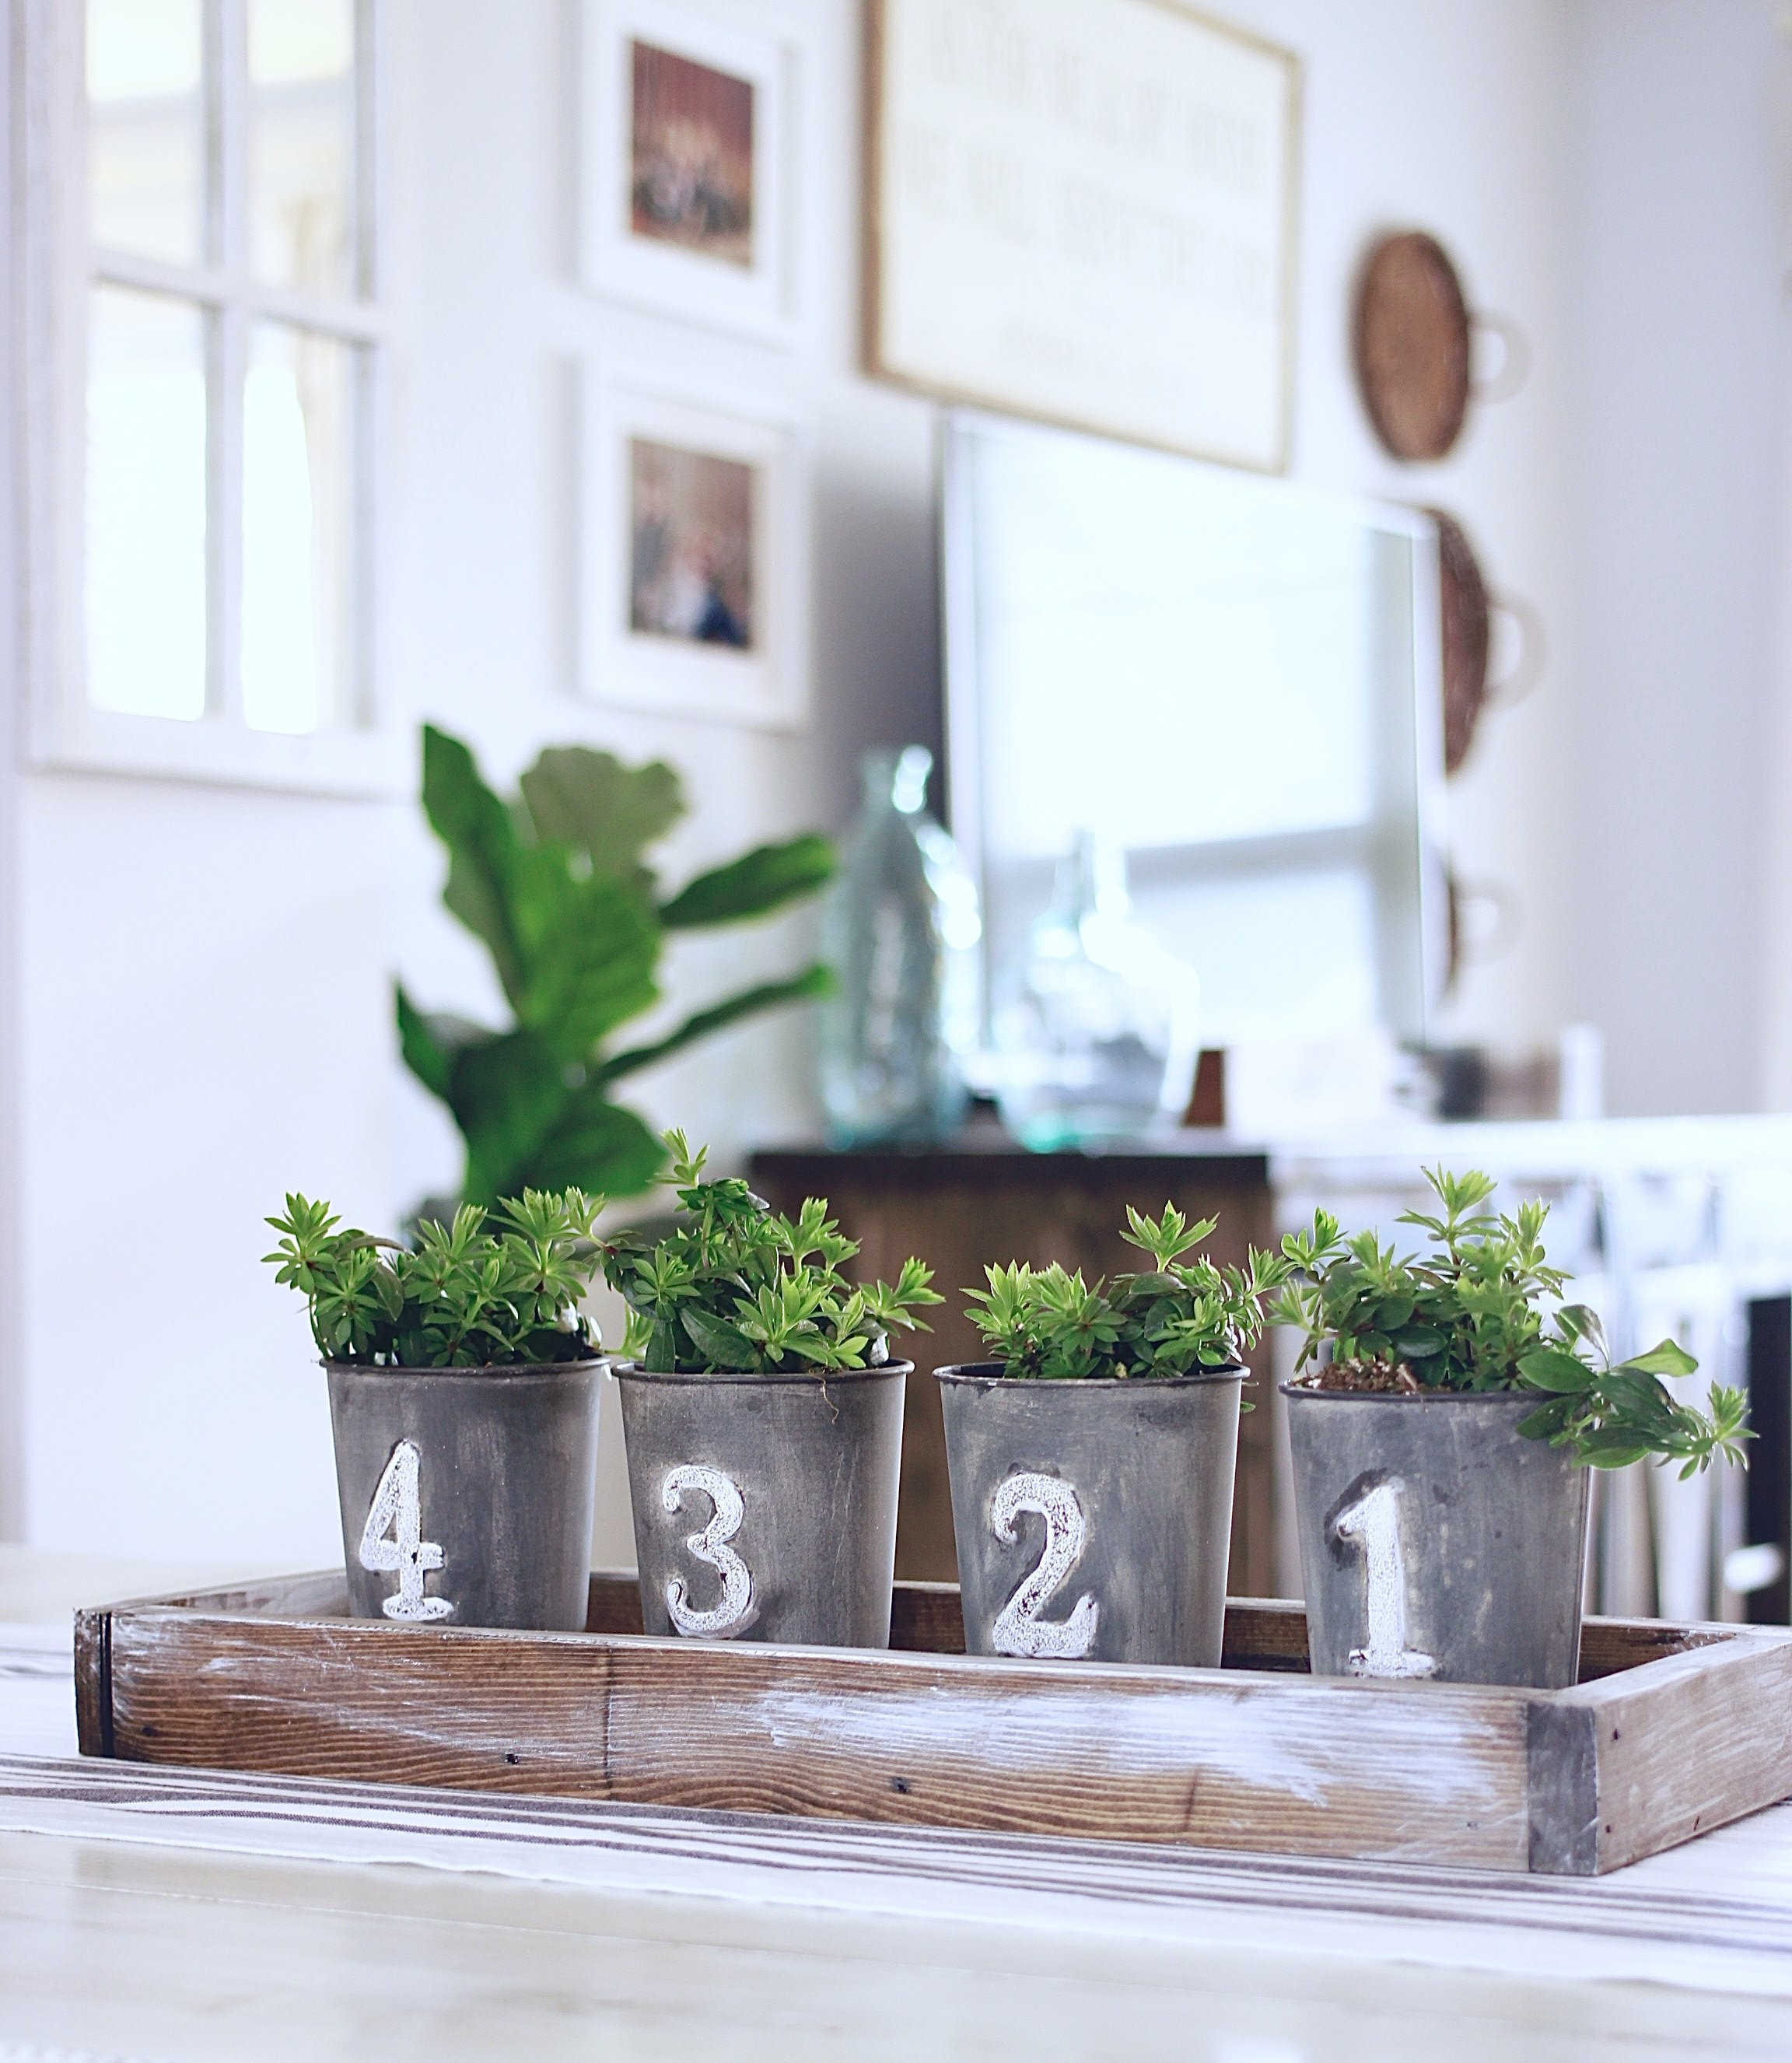 DIY Simple Spring Centrepiece for under 15 dollars and 10 minutes! www.whitepicketfarmhouse.com